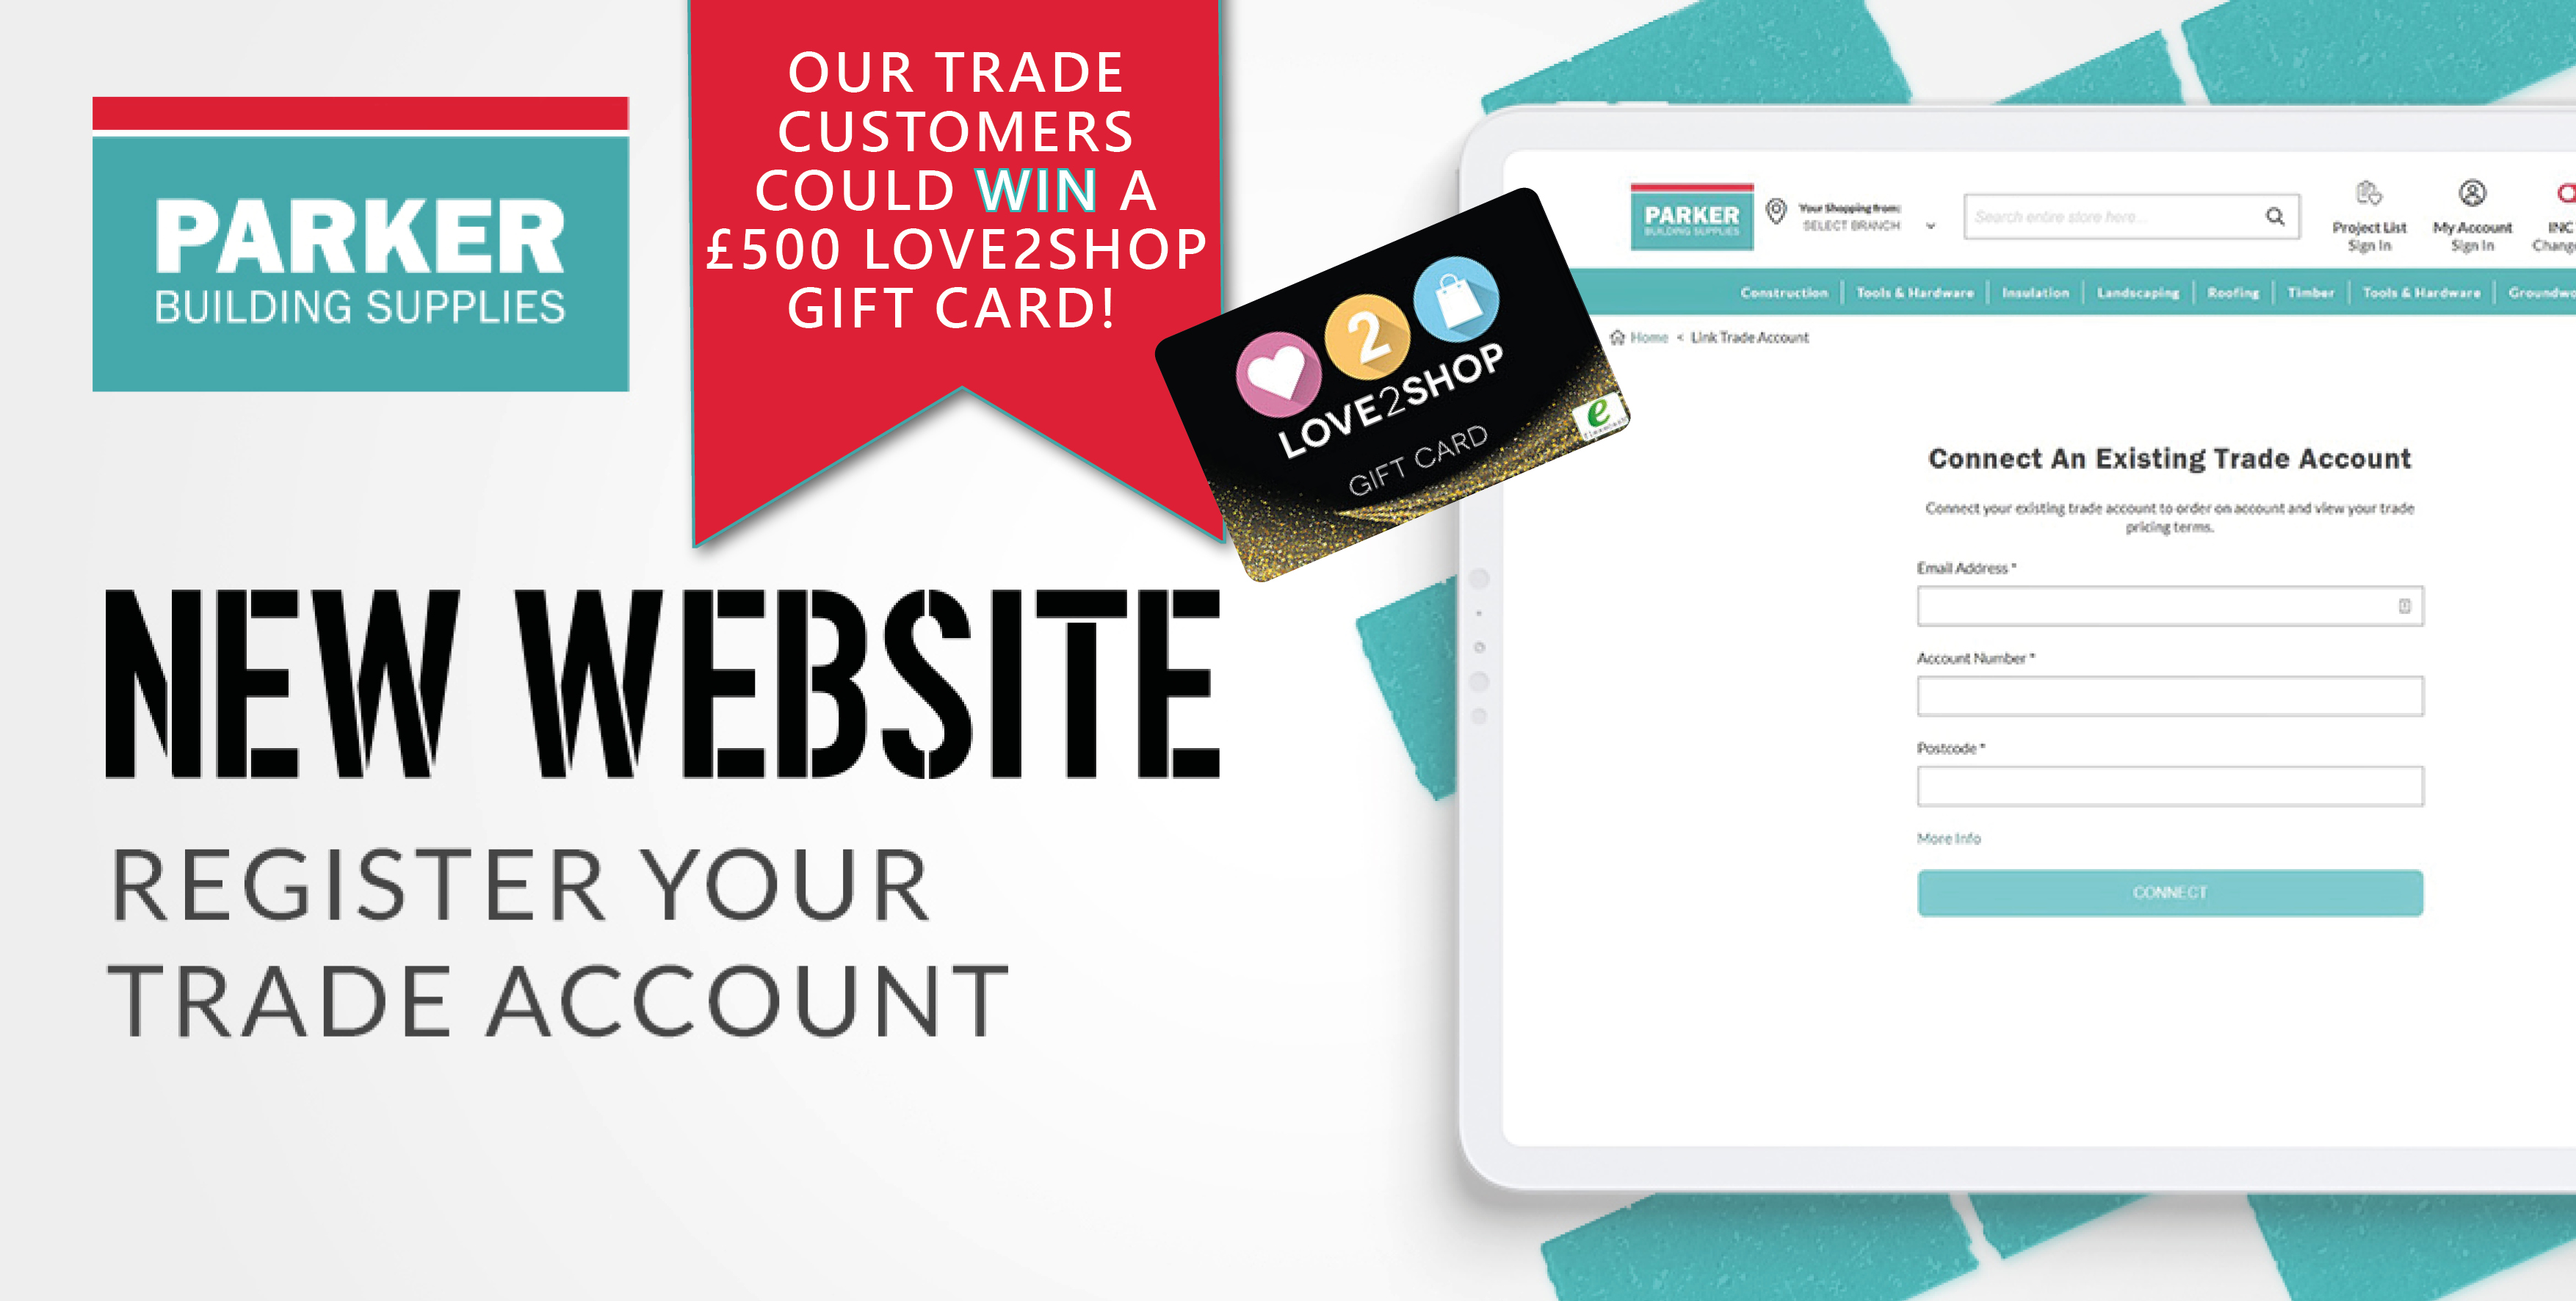 Calling all trade customers! Be one of the first 500 customers to register your trade account online for your chance to win a £500 Love2Shop gift card!